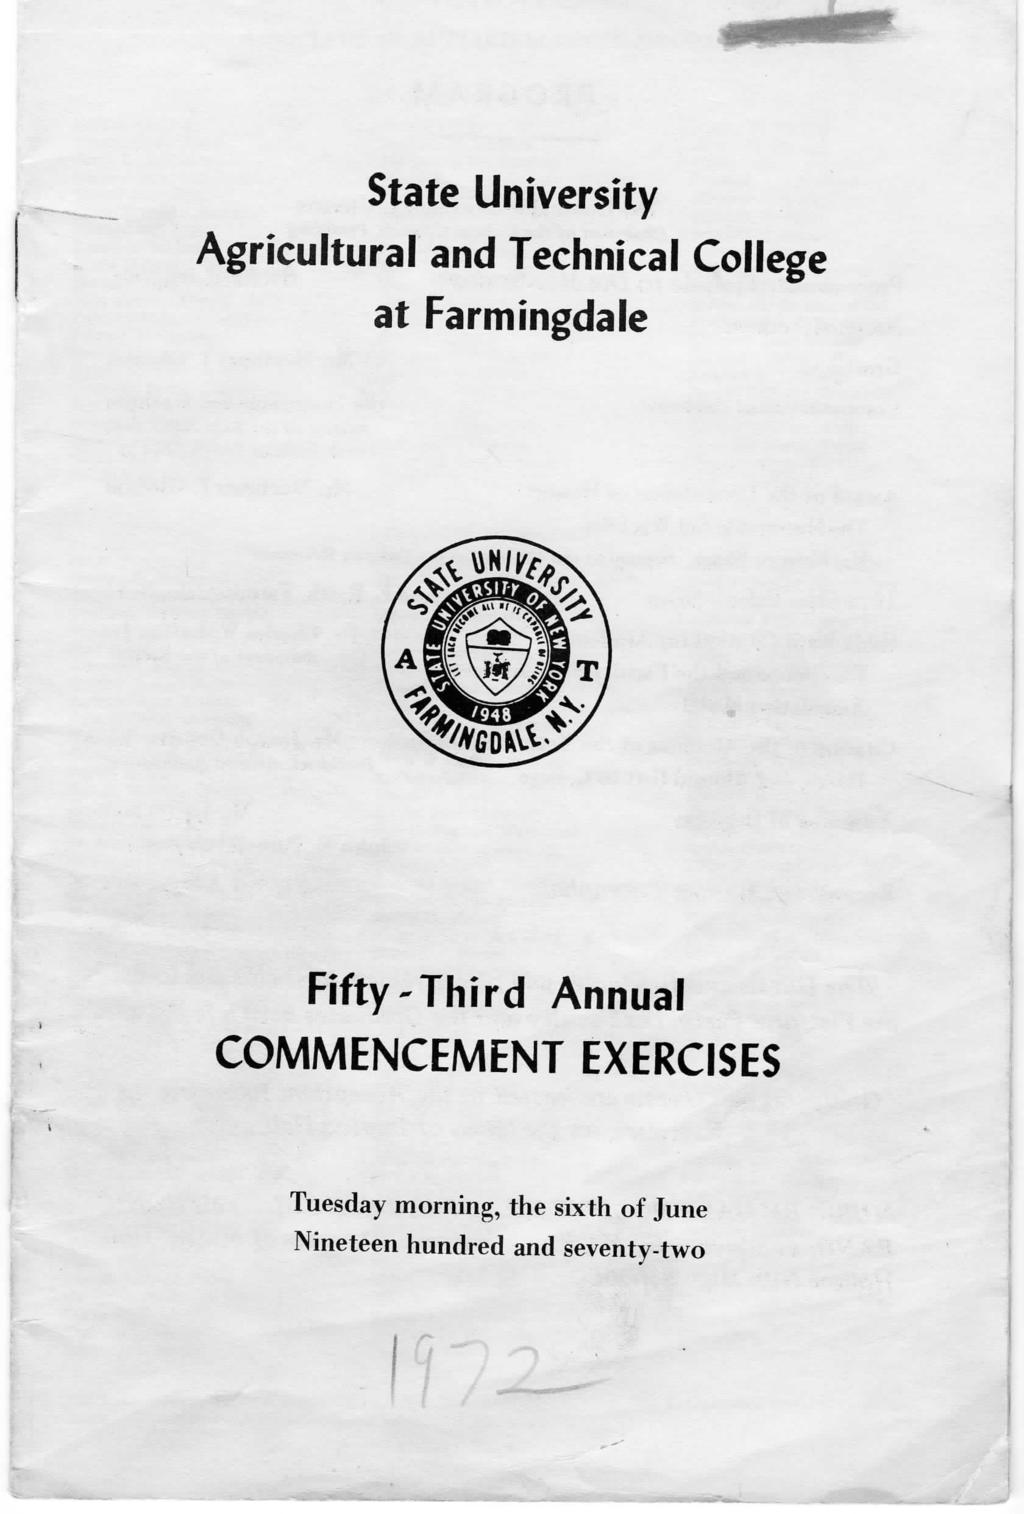 State University Agricultural and Technical College at Farmingdale Fifty-Third Annual